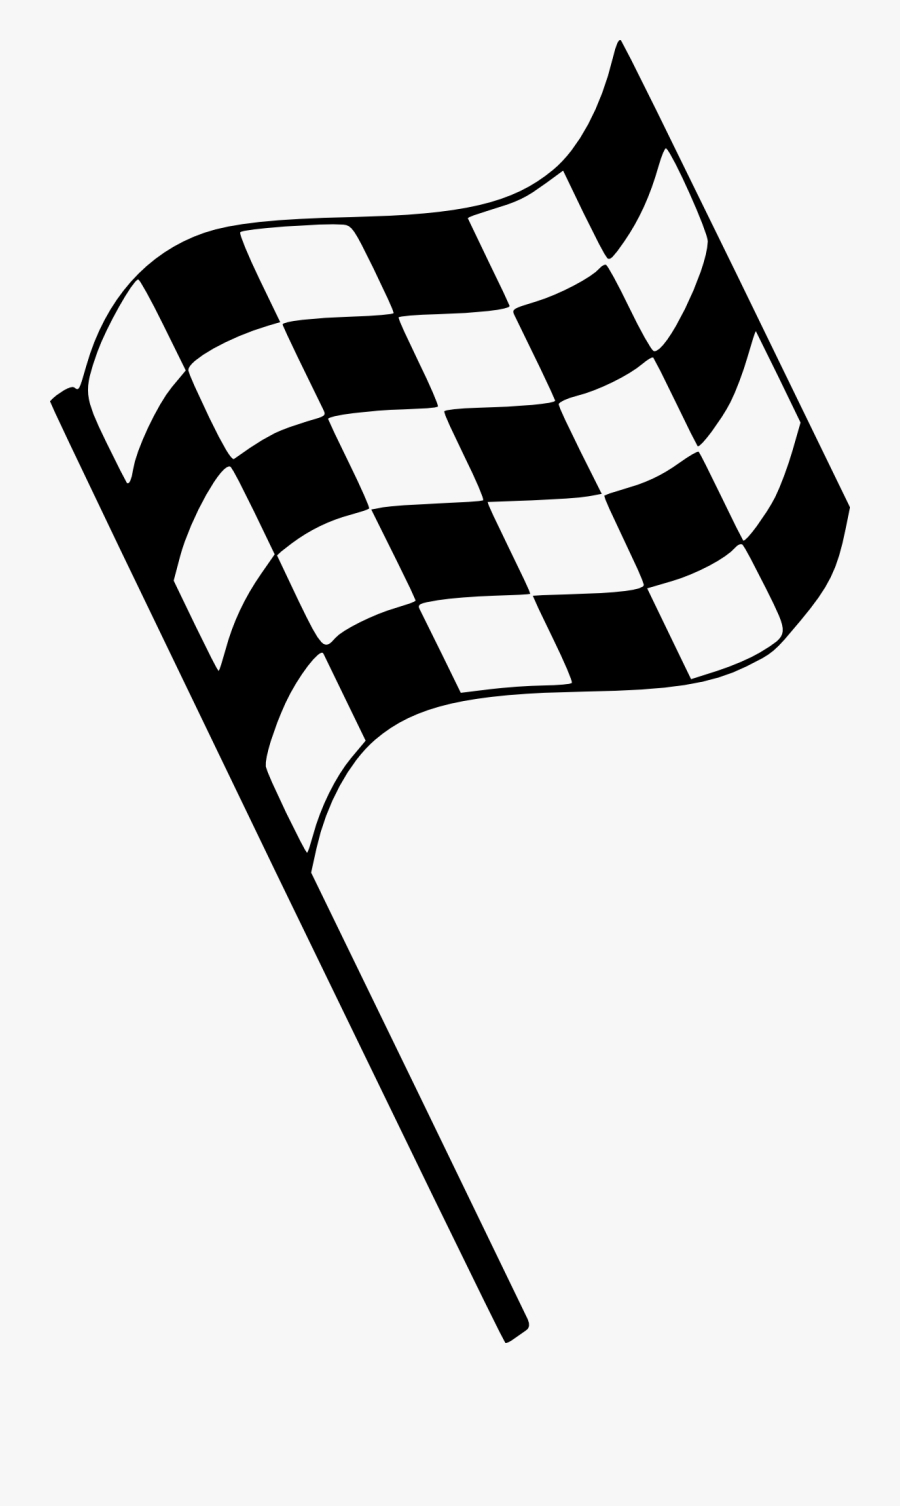 Checkered Flag Start Stop Race Png Image - Finish Line Flag Png, Transparent Clipart